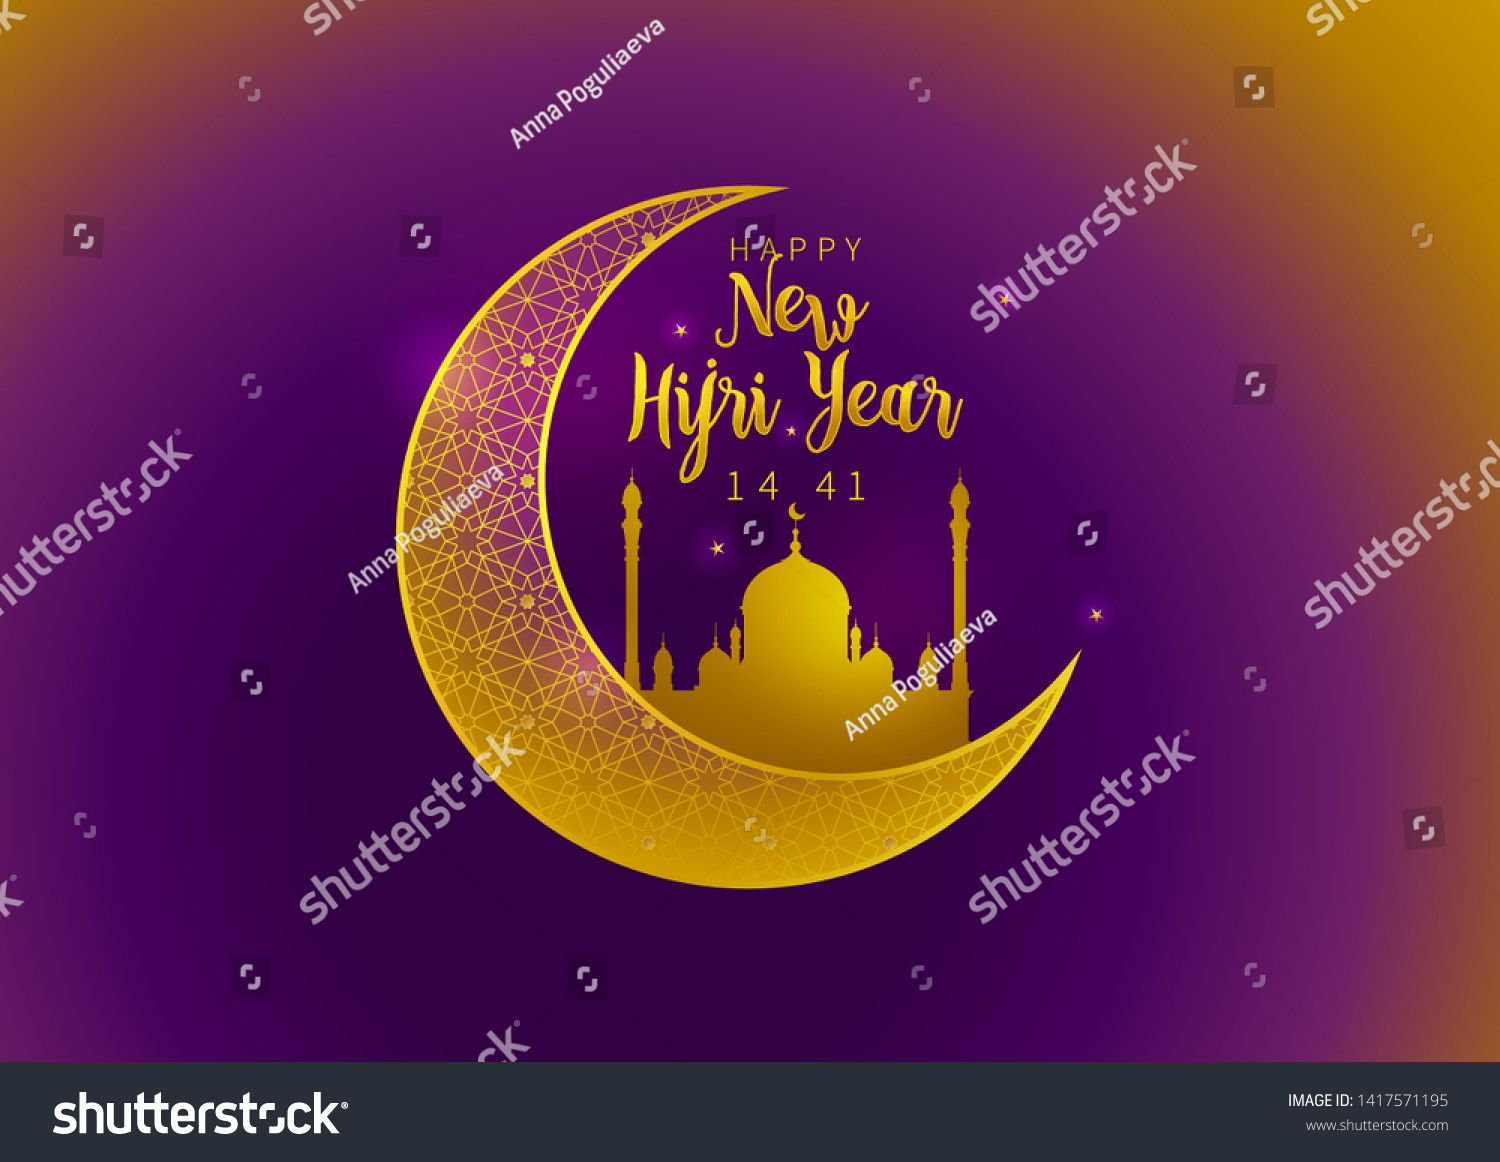 Muslim Holiday Happy New Hijri Year 1441 Vector Card With Gold Crescent Calligraphy Mosque For Celebration Islamic Greetin Muslim Holidays Hijri Year Happy